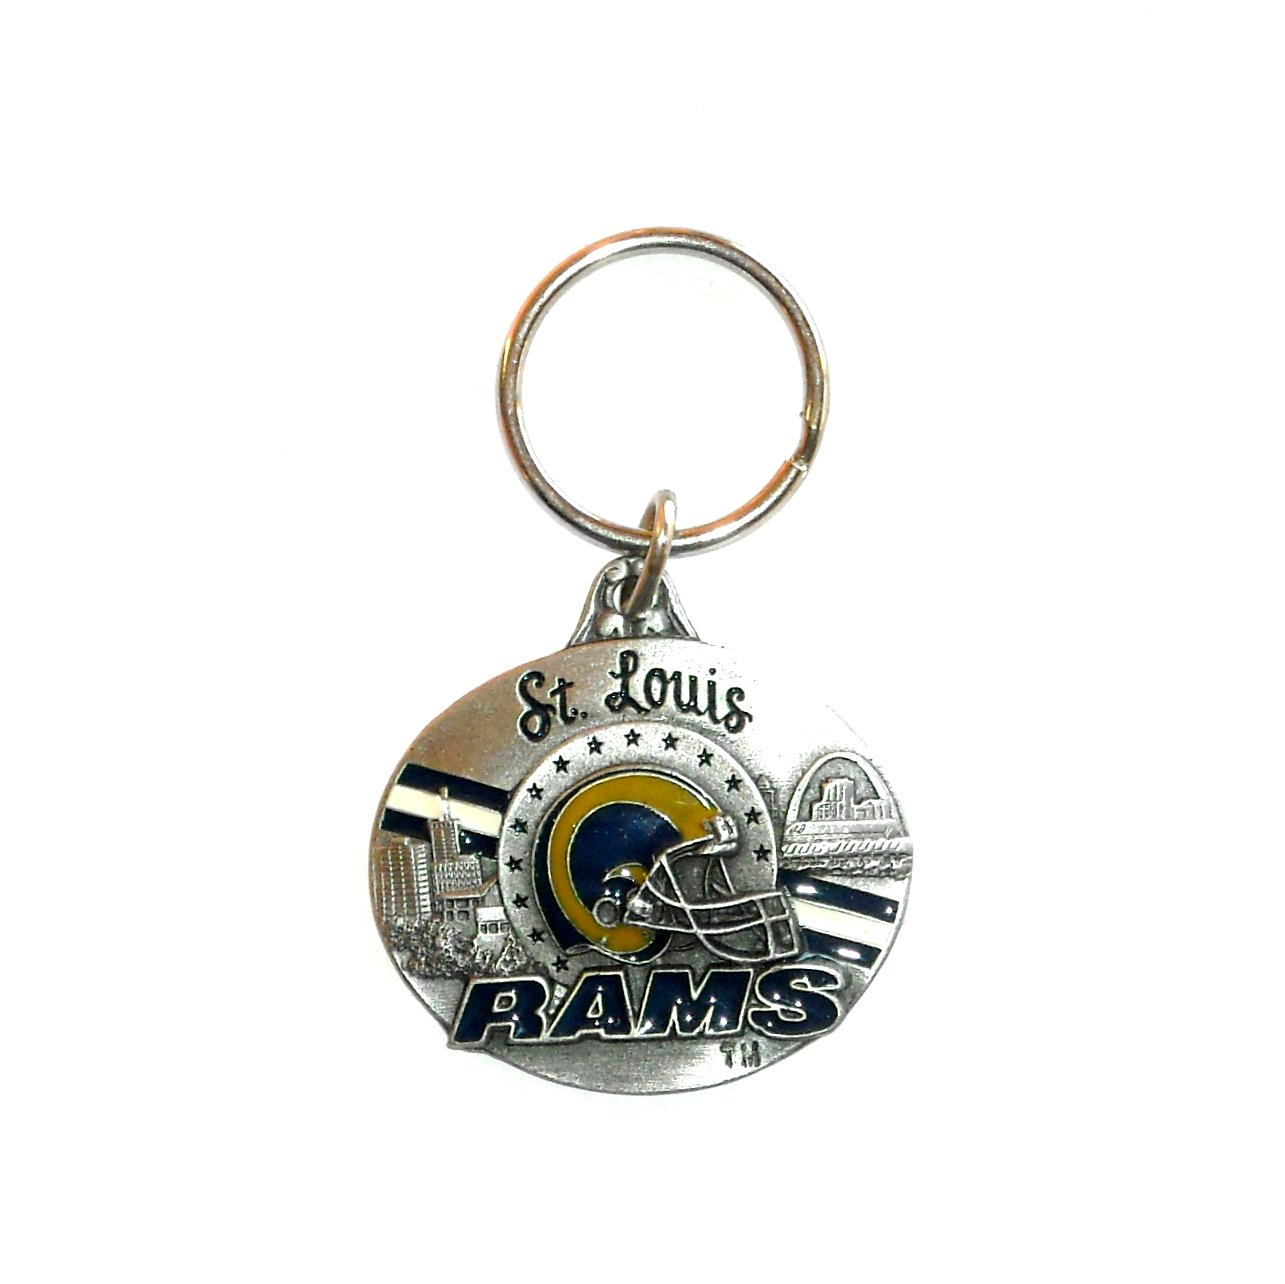 St Louis Rams NFL Football Fob Key Ring Keychain